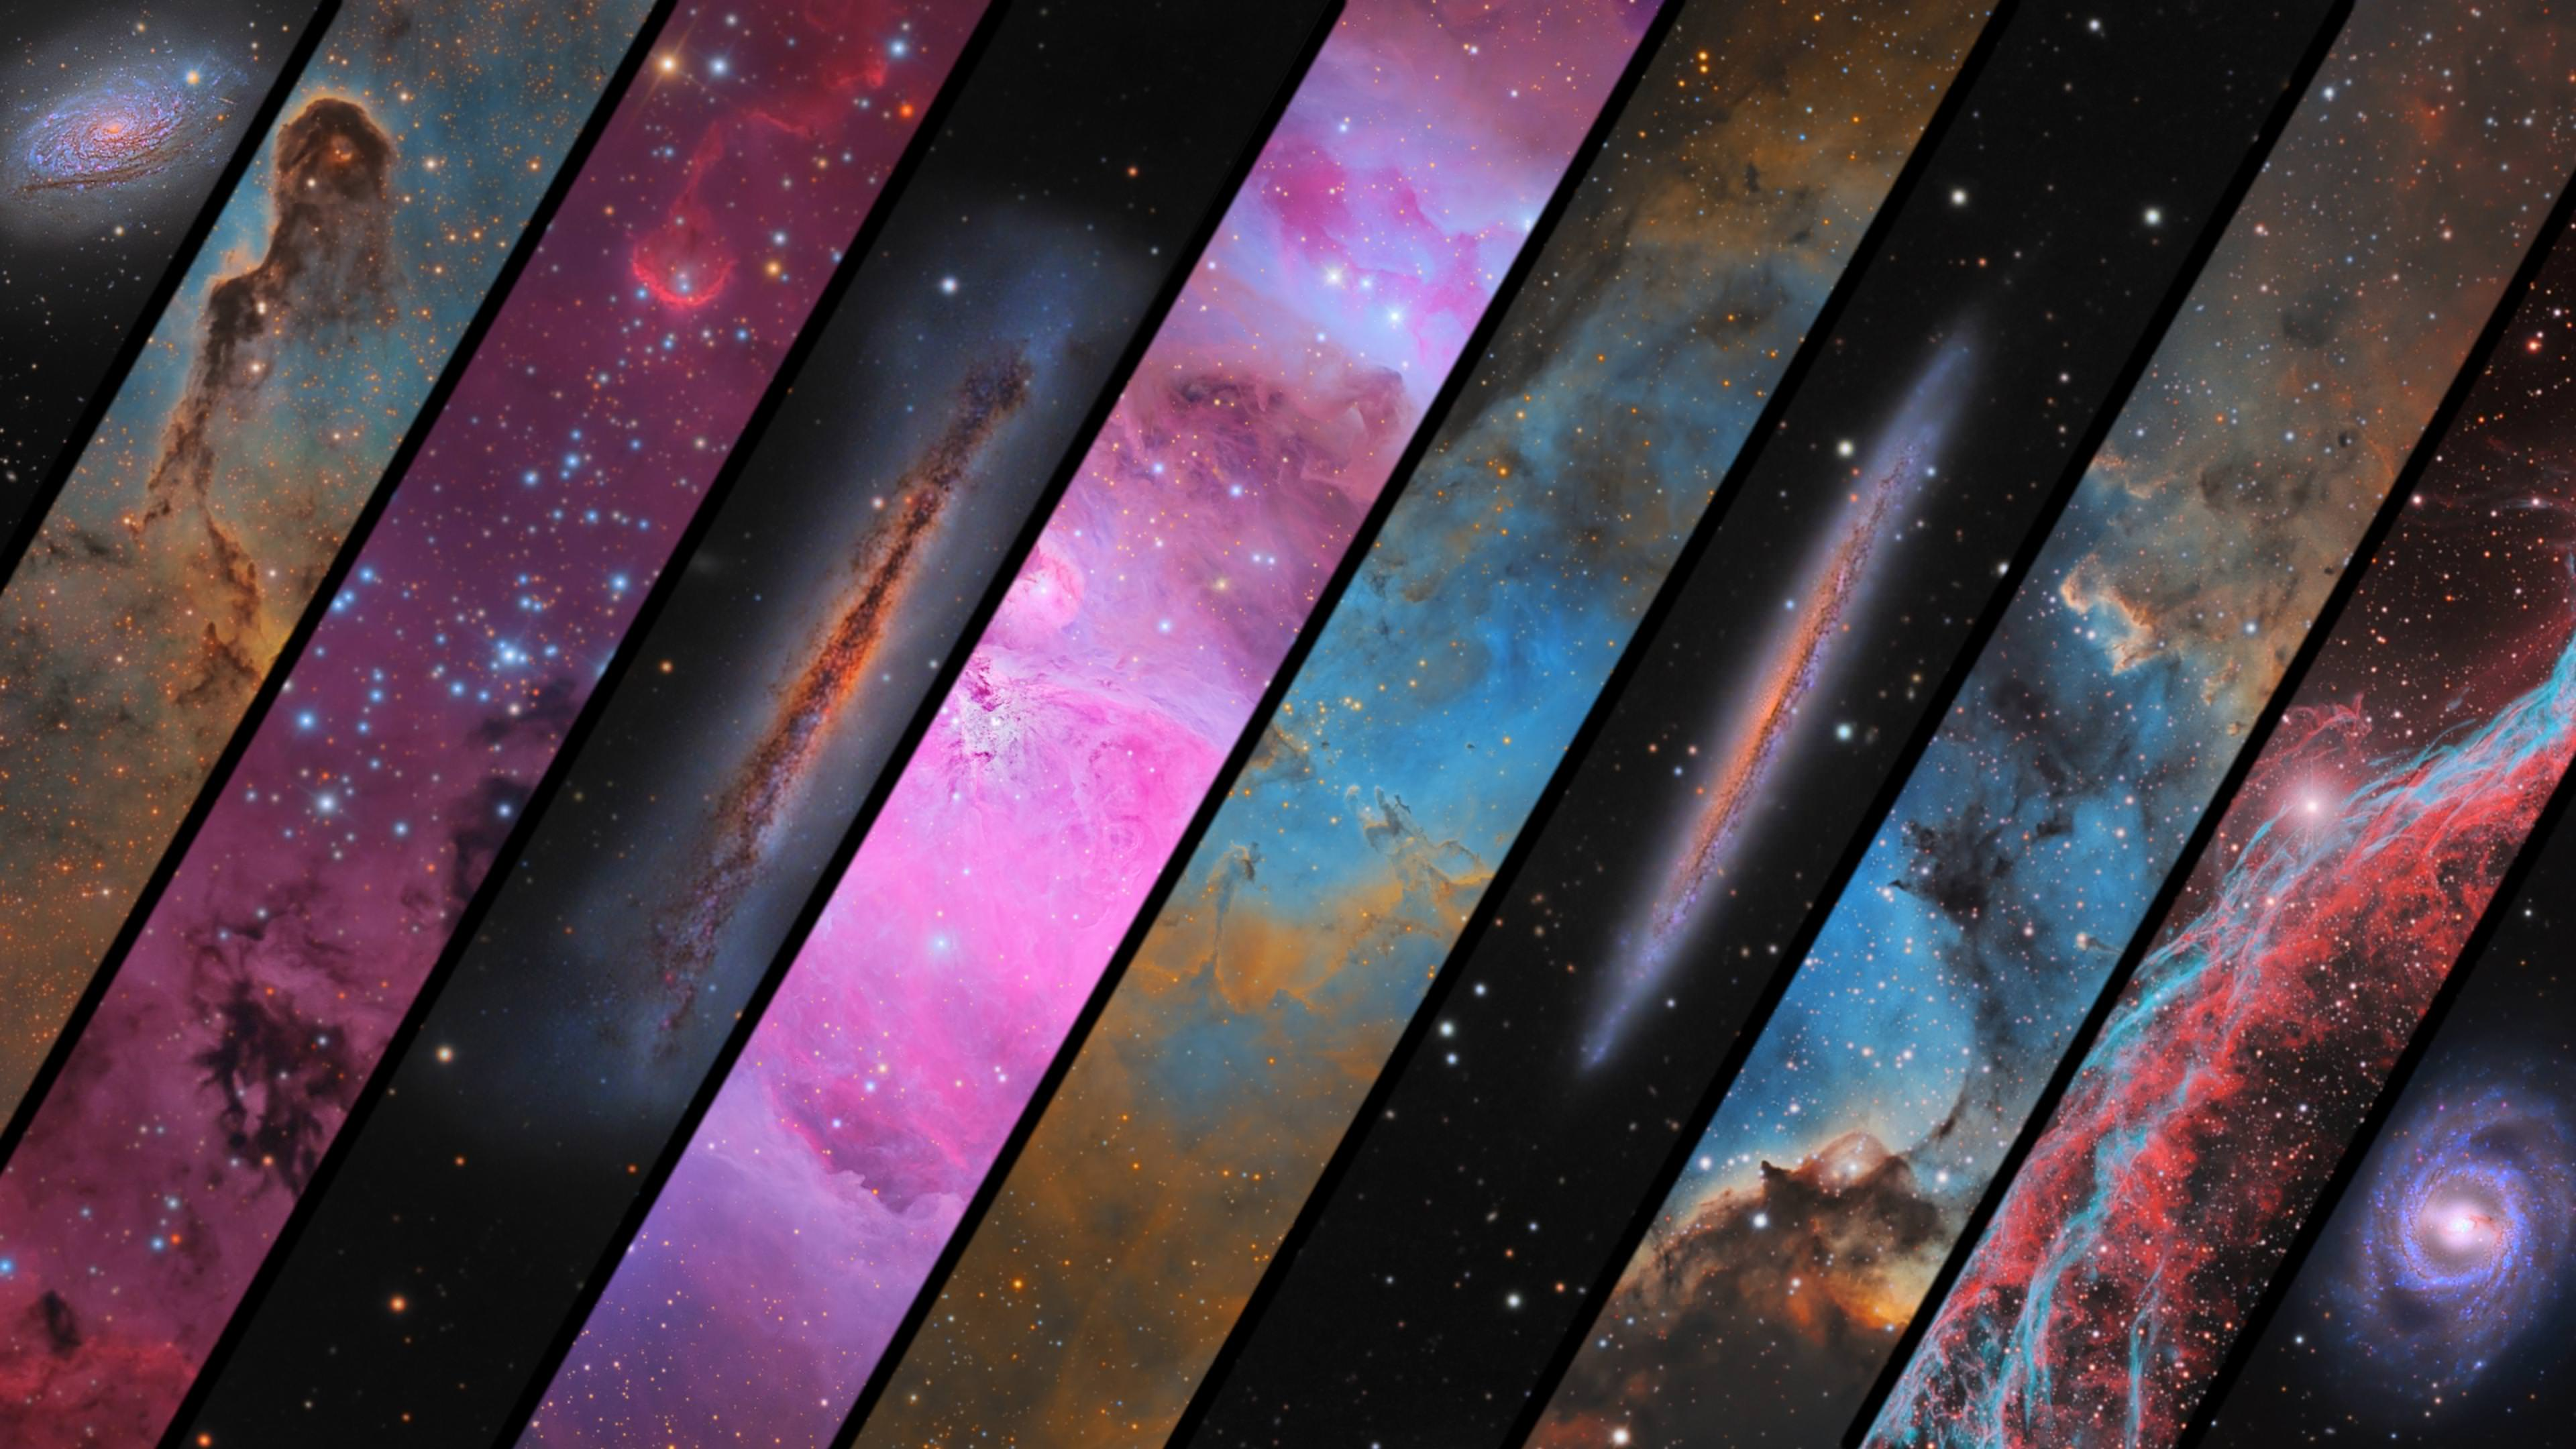 Wallpaper 4k Astrophotos Space Abstract 4k Wallpapers